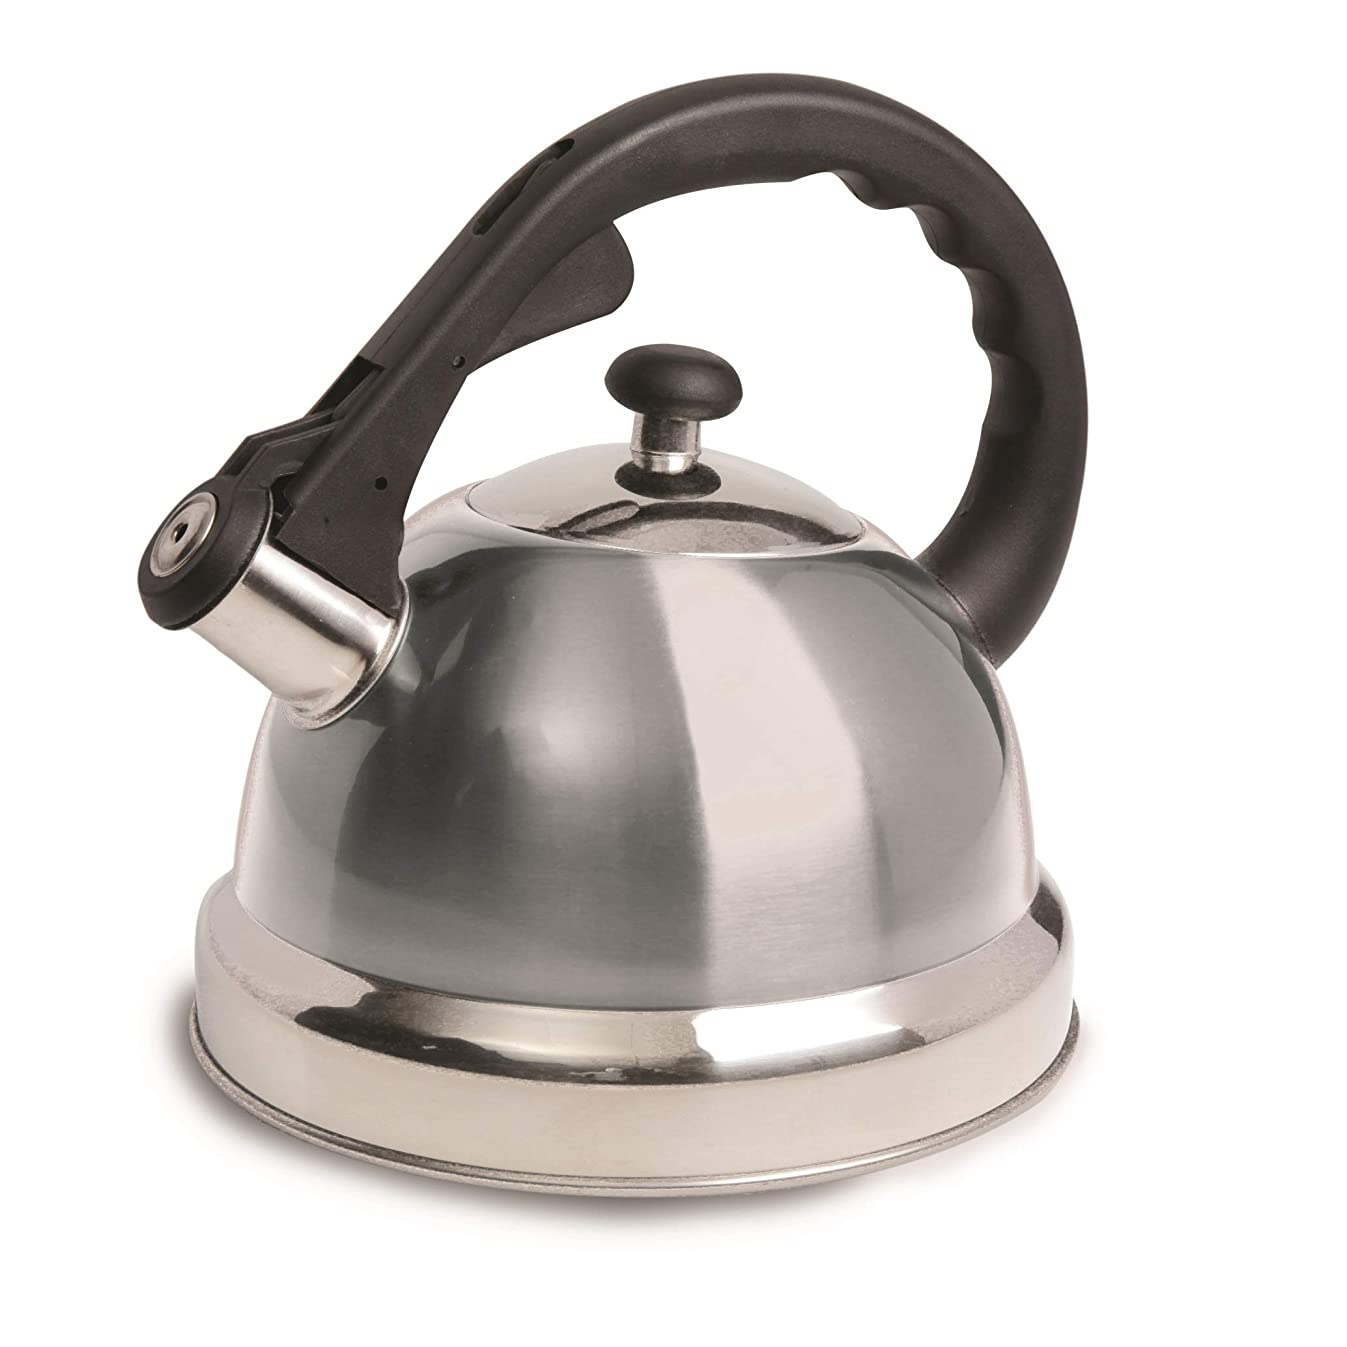 Mr Coffee 108075.01 Claredale 2.2 Qt Whistling Tea Kettle-Brushed SS, Stainless Steel